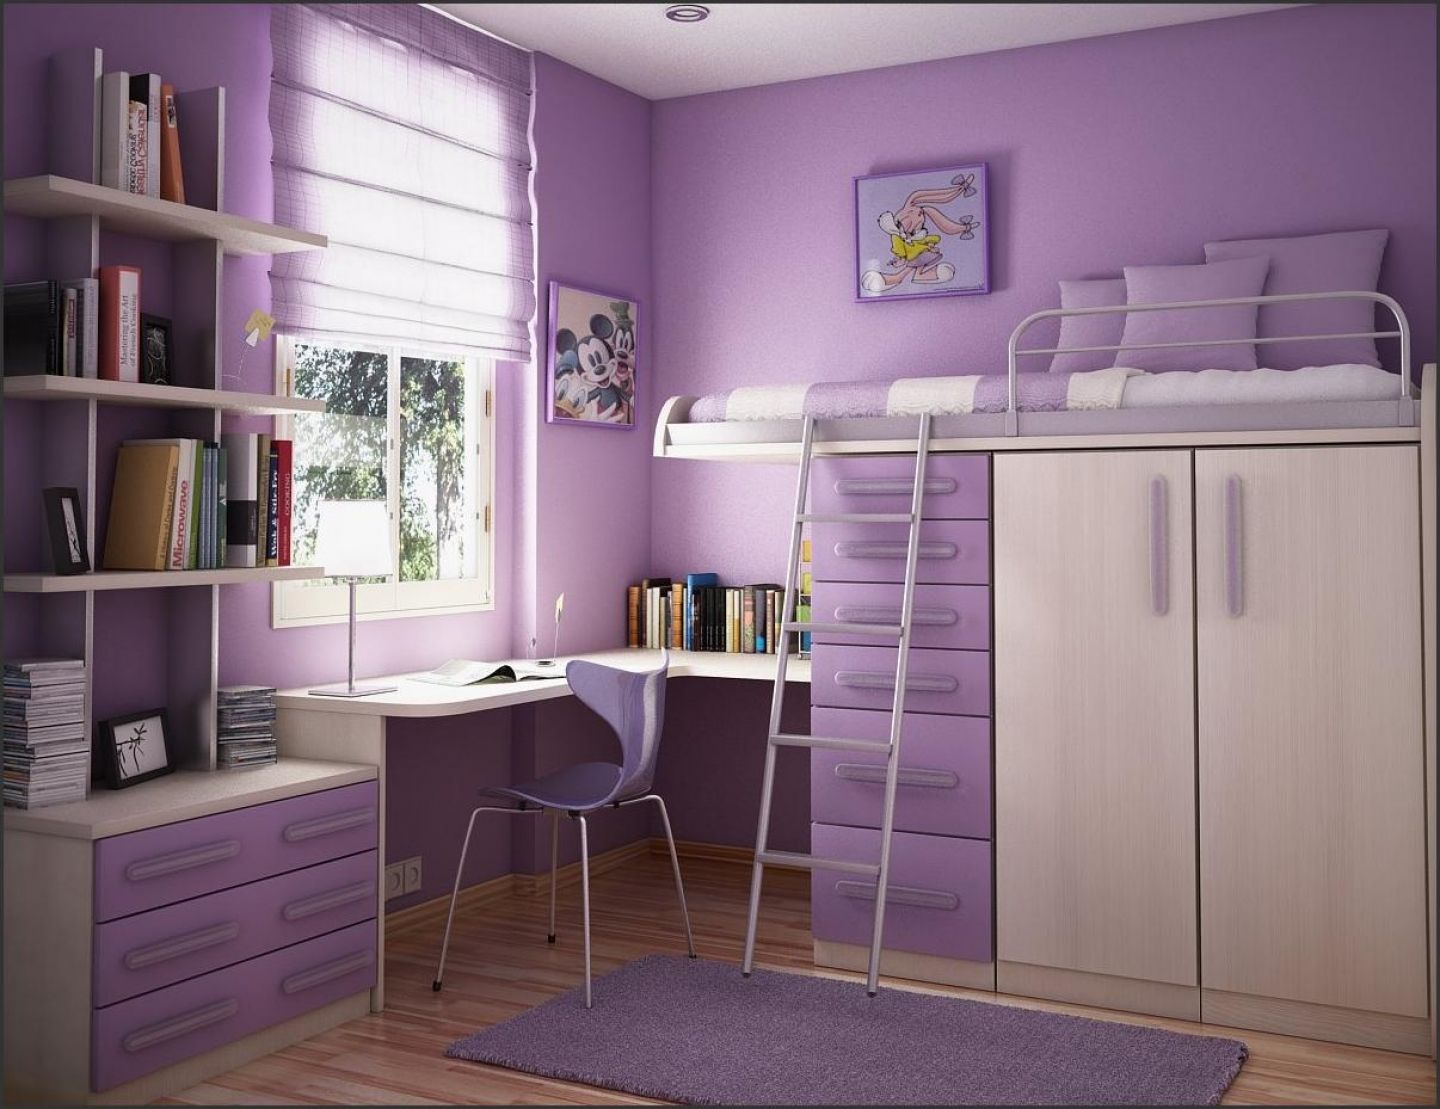 Cool Room Designs For Teenage Girls Amazing Teen Girl Bedroom Decorating Ideas  0613 140358 Bedroom . 2017